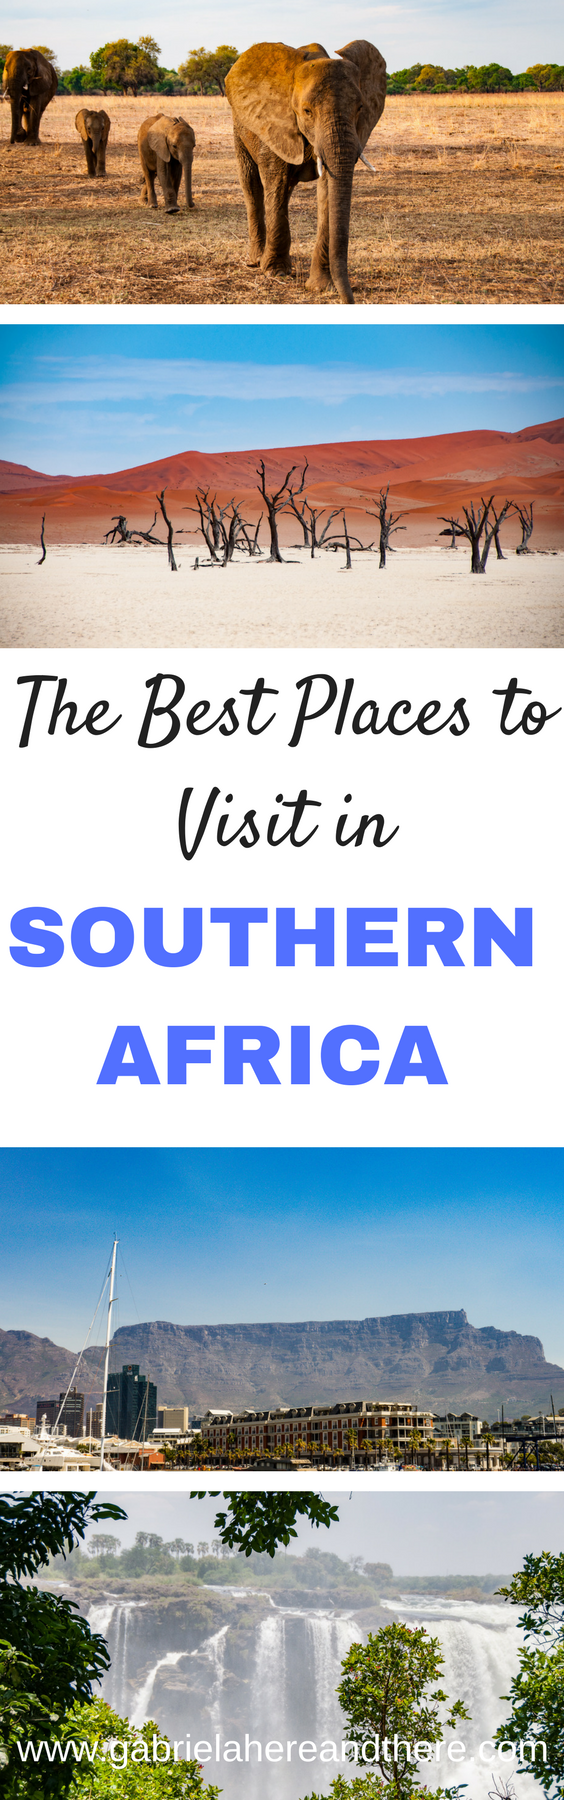 The Best Places to Visit in Southern Africa